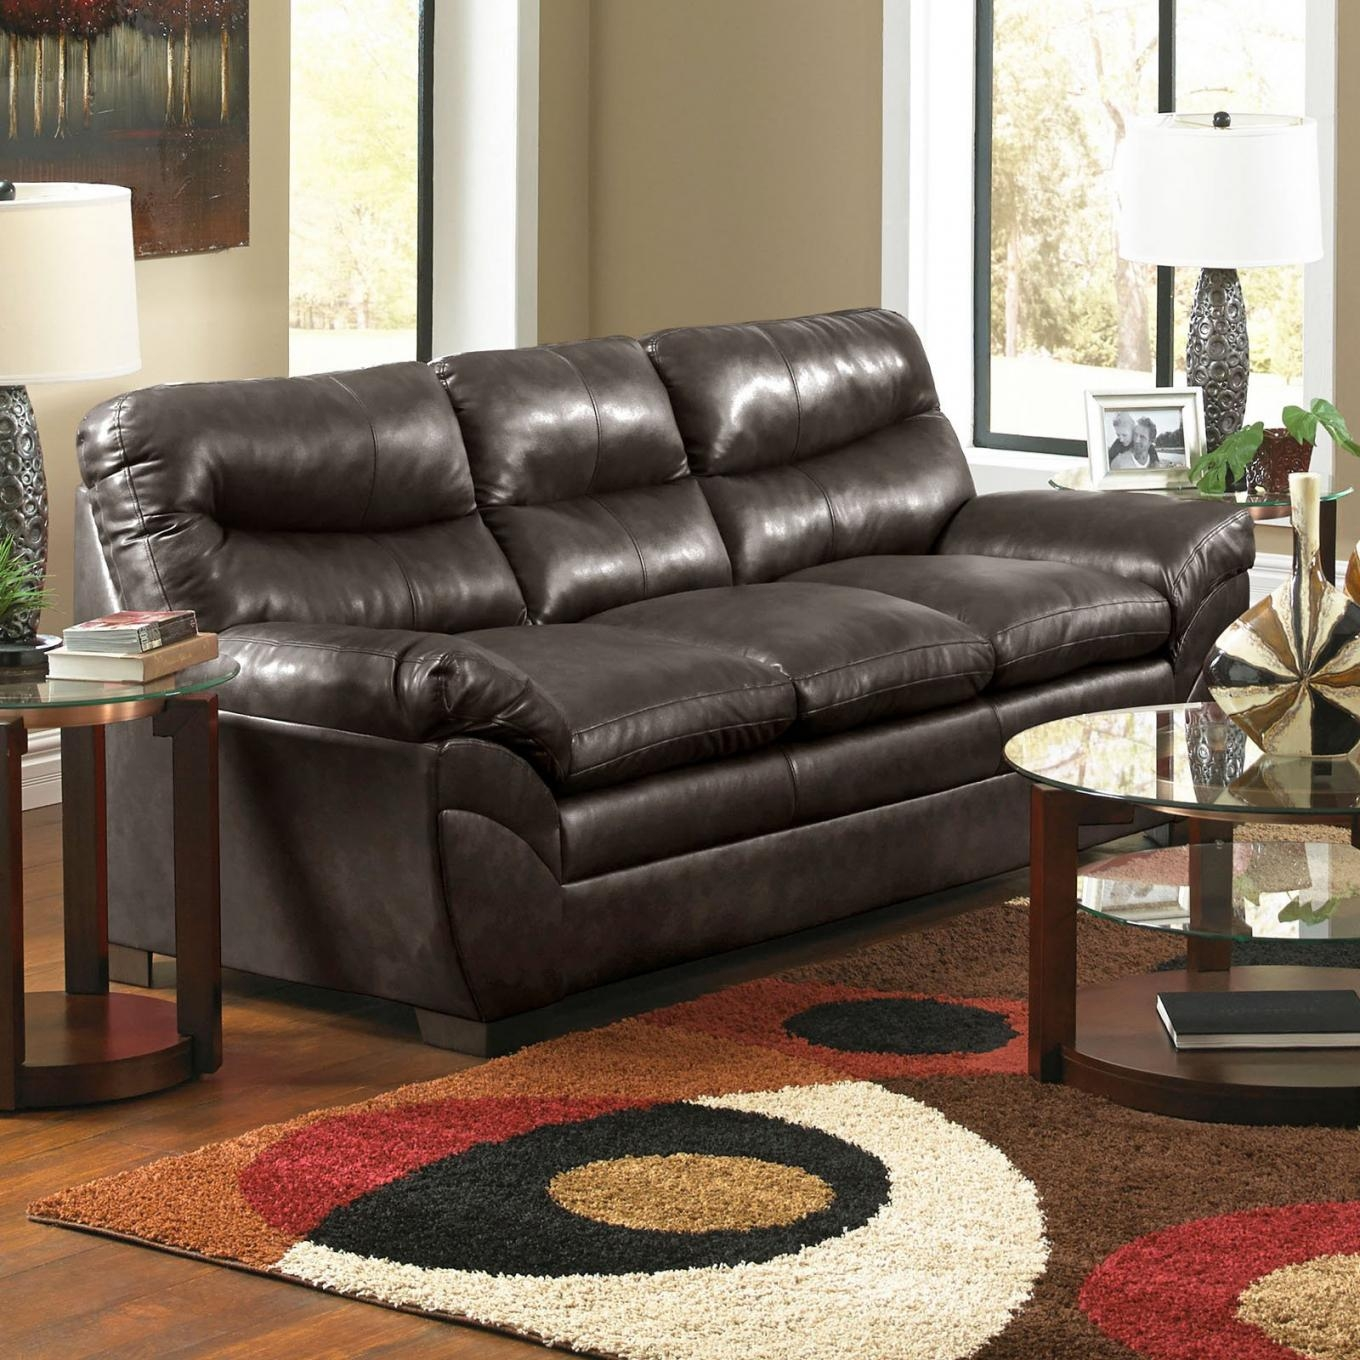 Espresso Leather Sofa Intended For Simmons Bonded Leather Sofas (View 19 of 20)